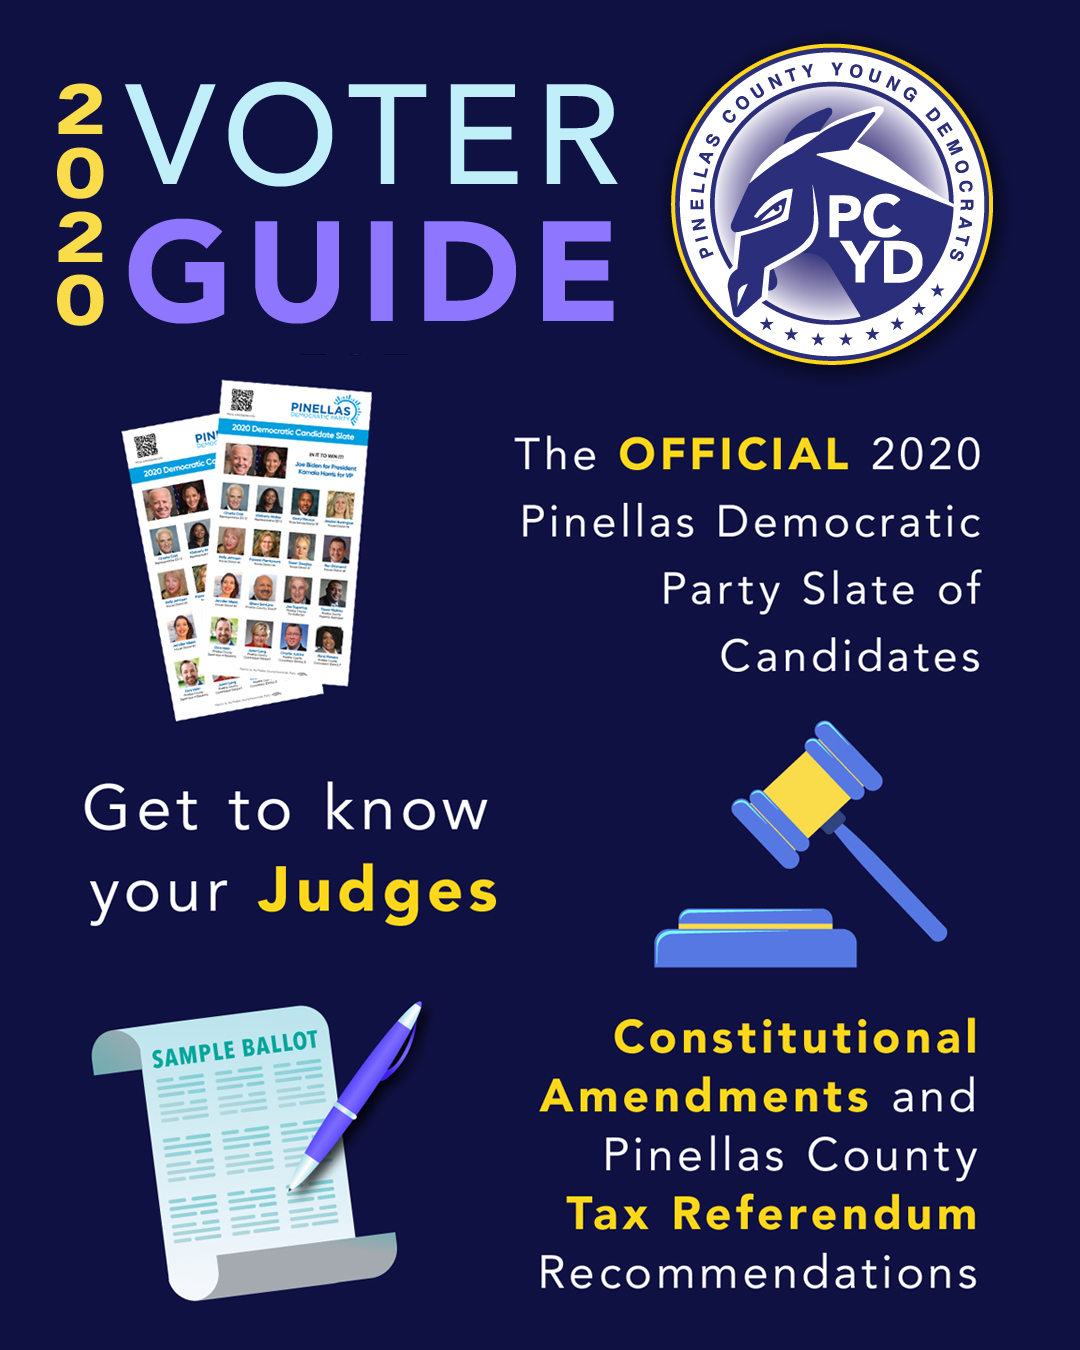 Pinellas County Voter Guide